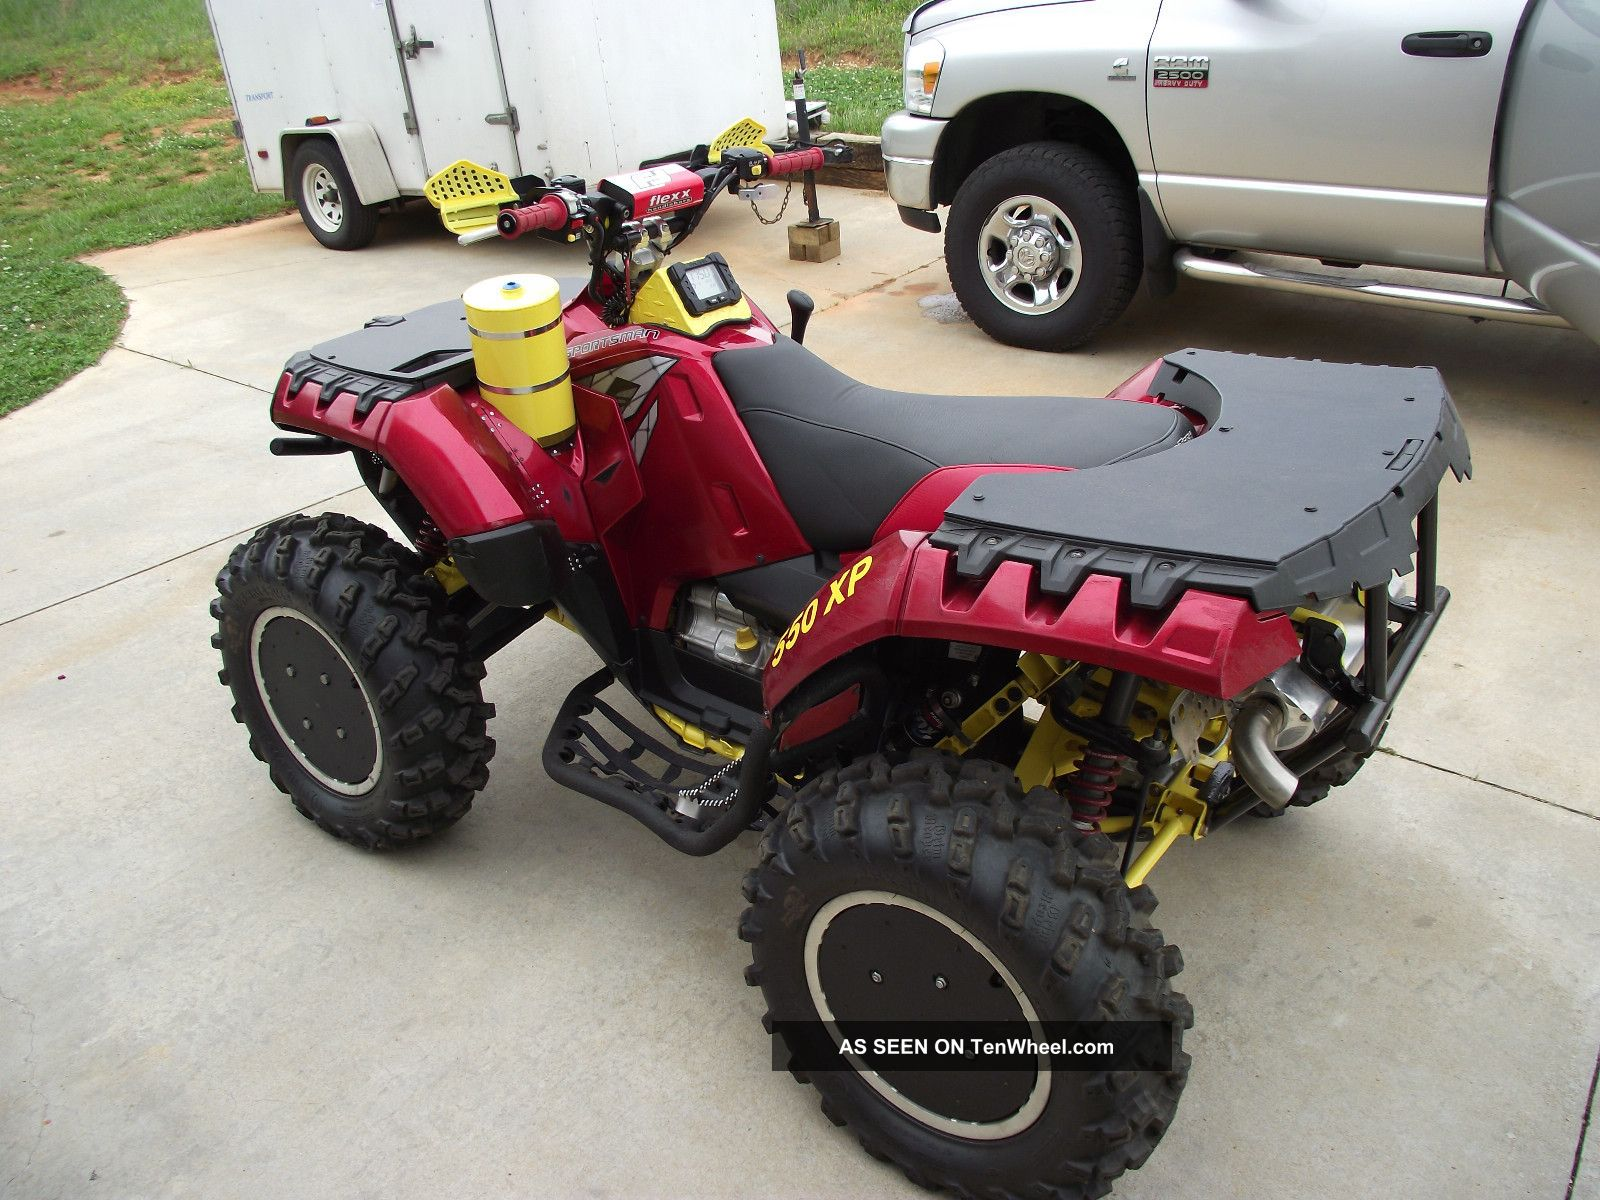 2010 polaris sportsman 550 xp service manual